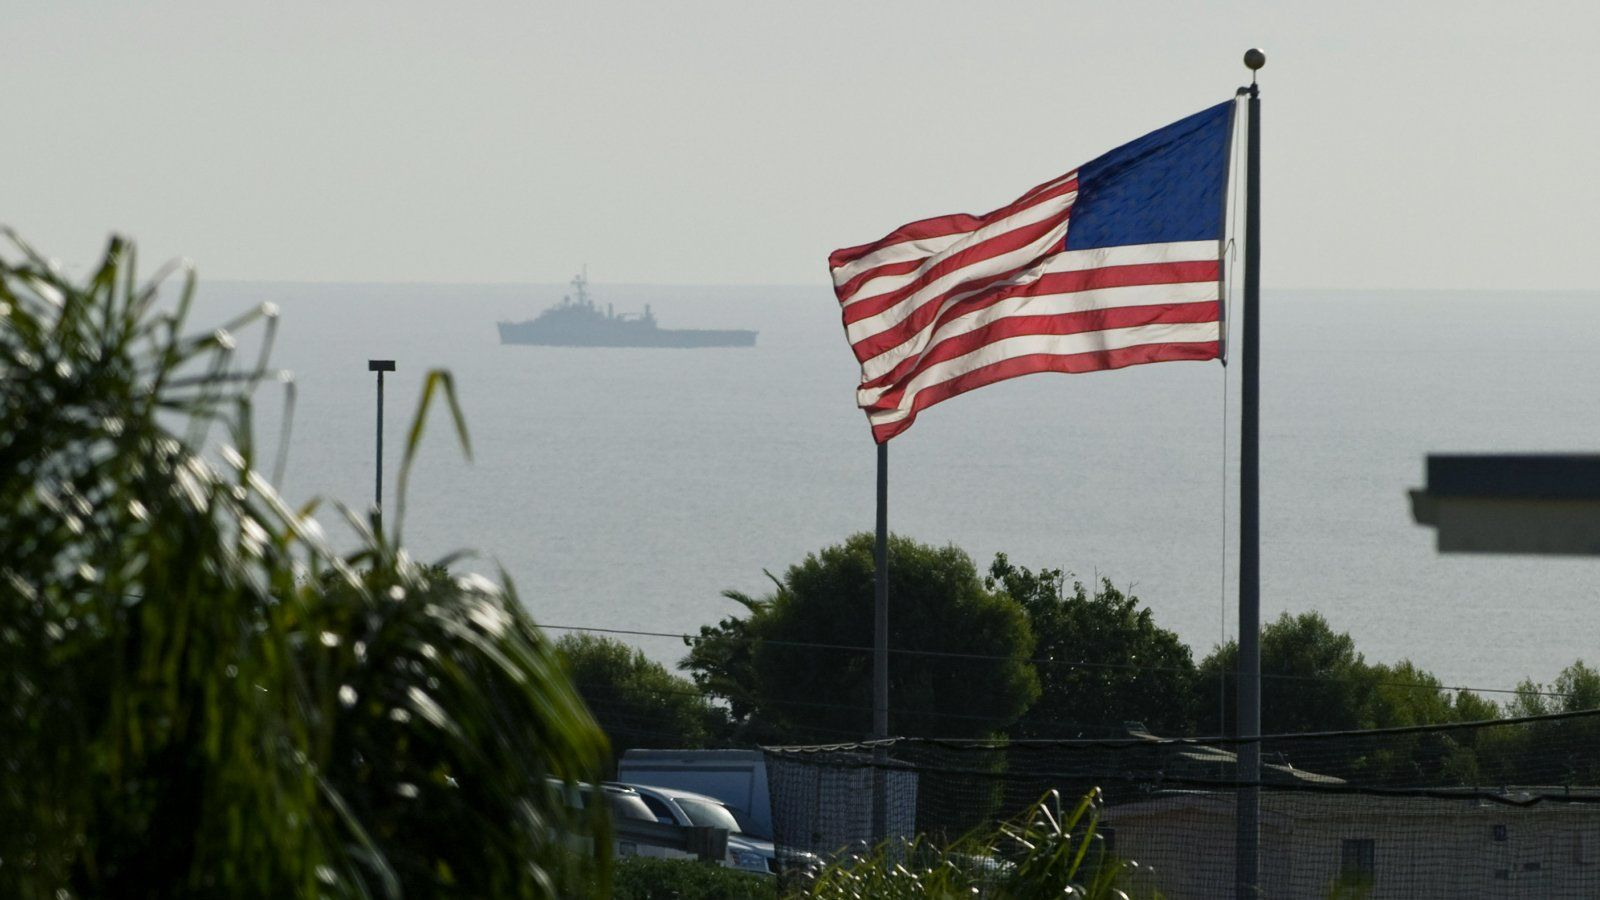 PLNU proudly flies the flag between on campus, while a navy ship maneuvers just off the coast.